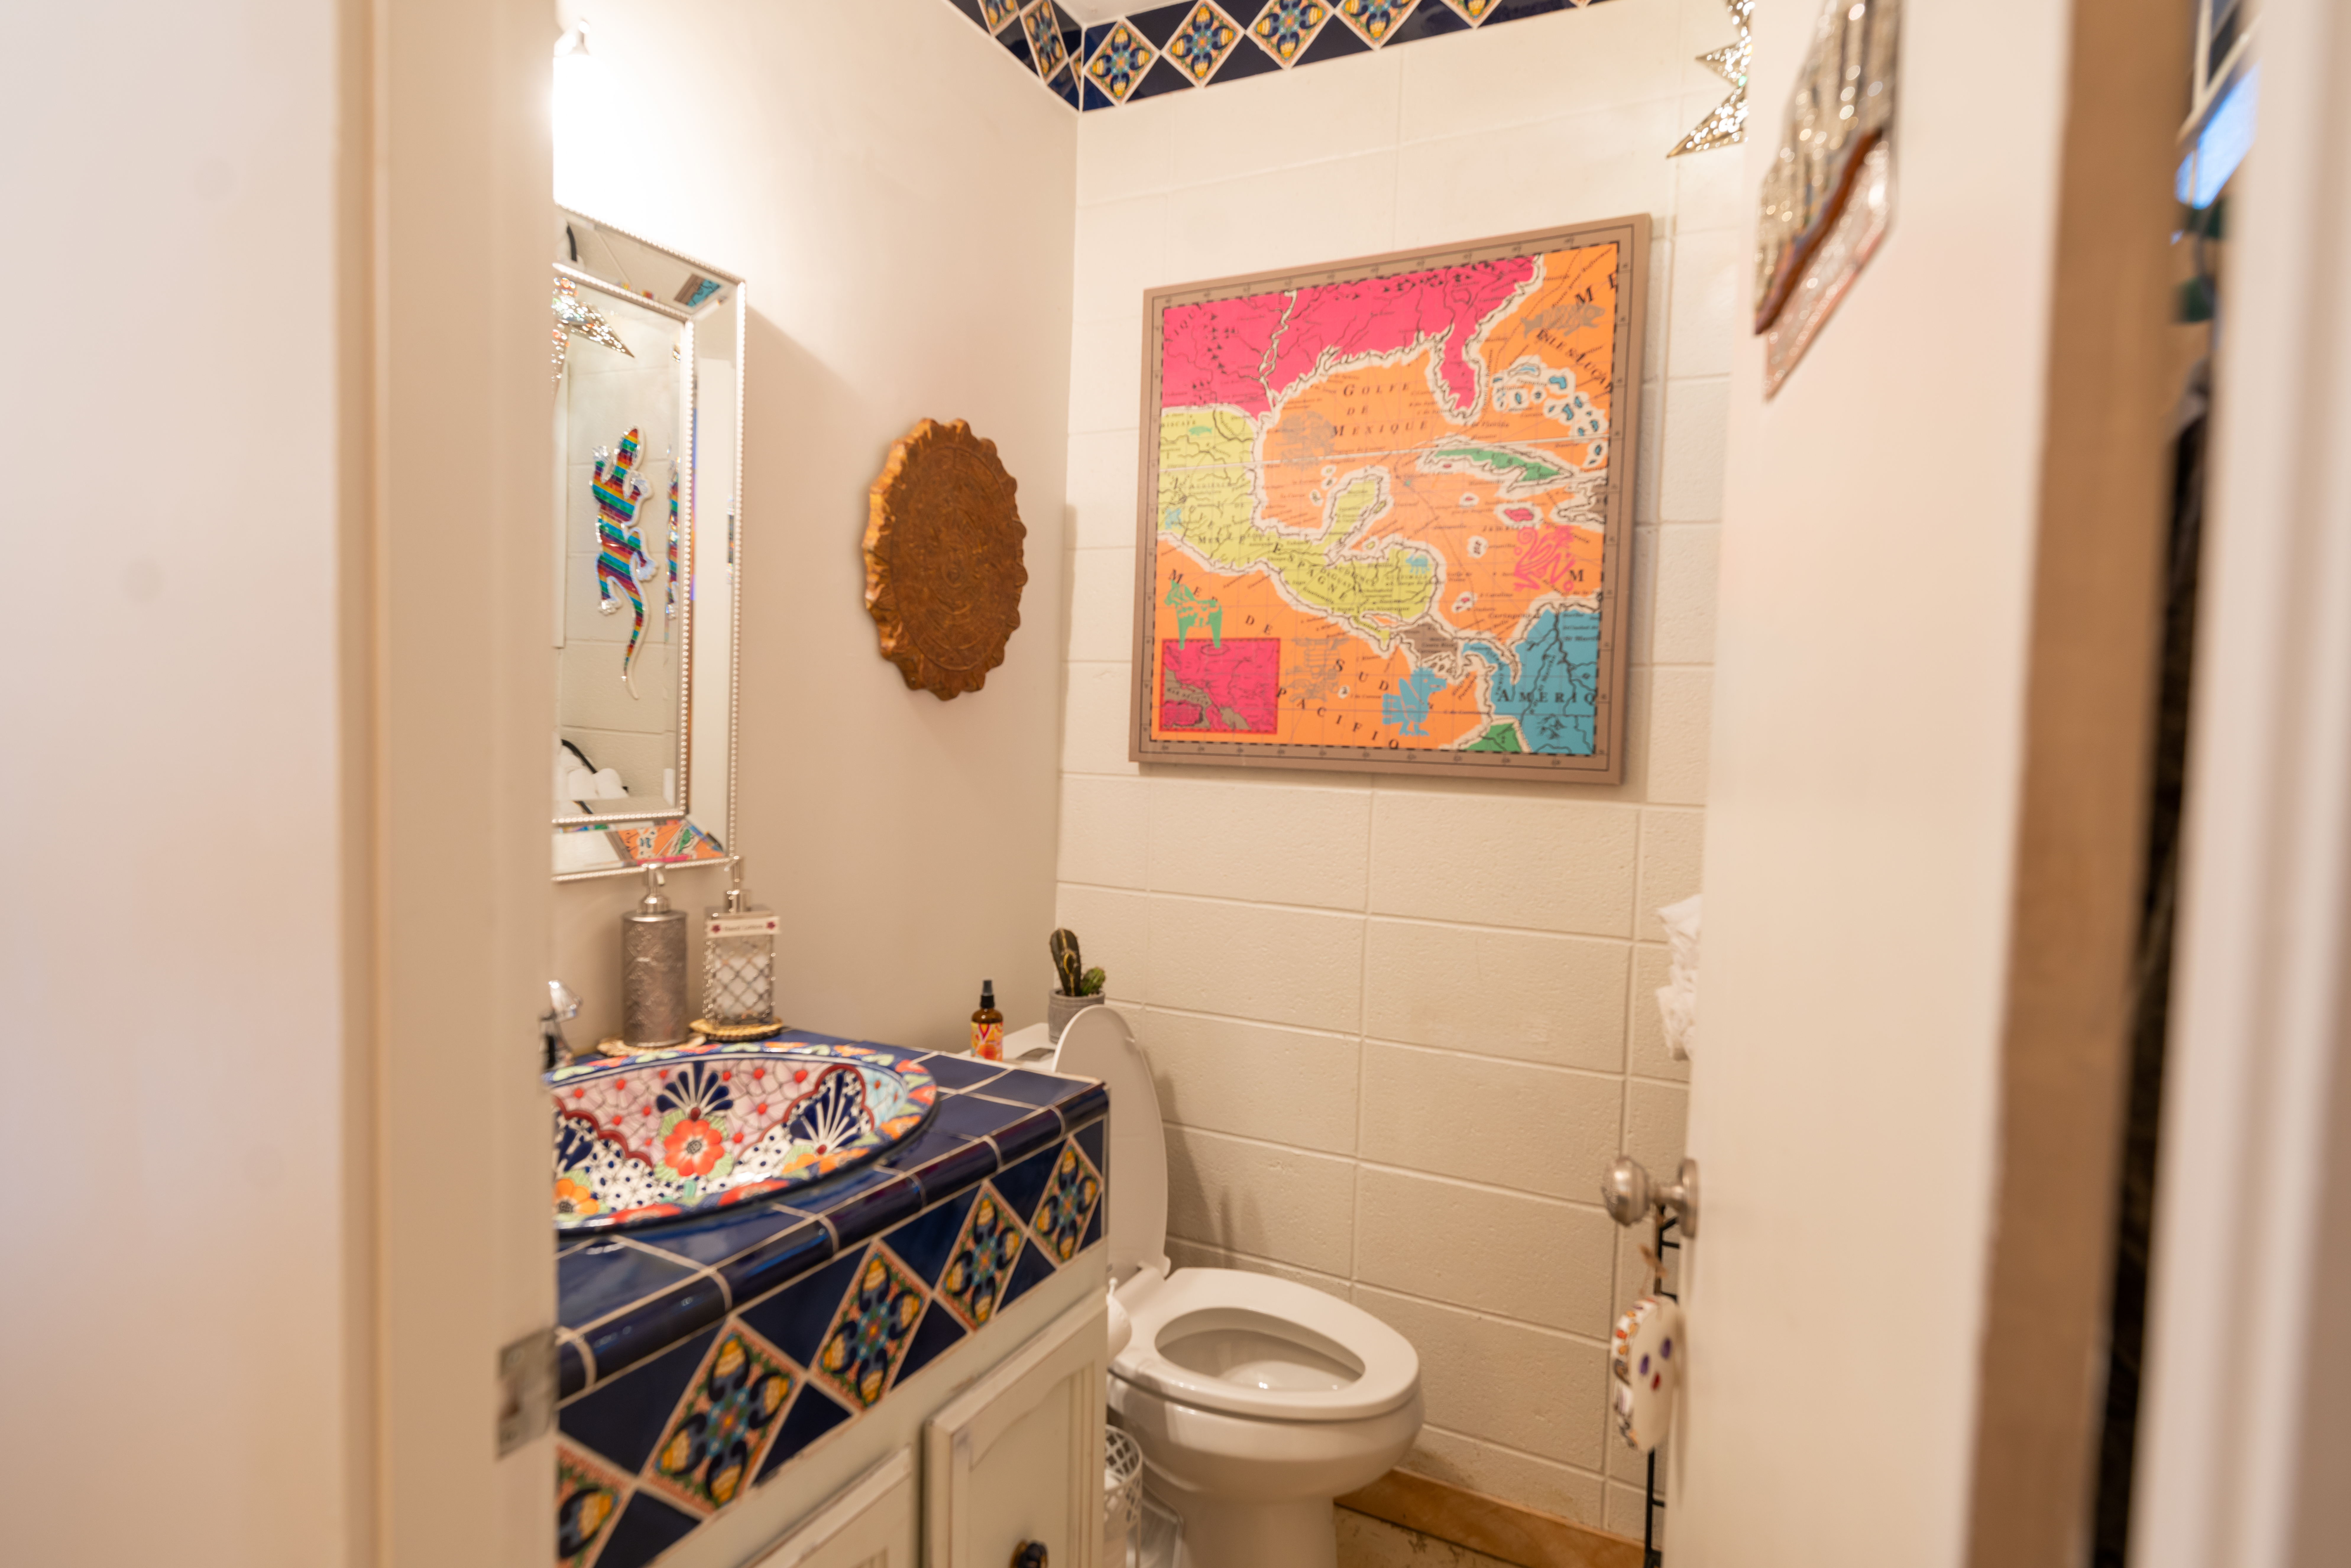 Our precious baño, because we love Mexico!